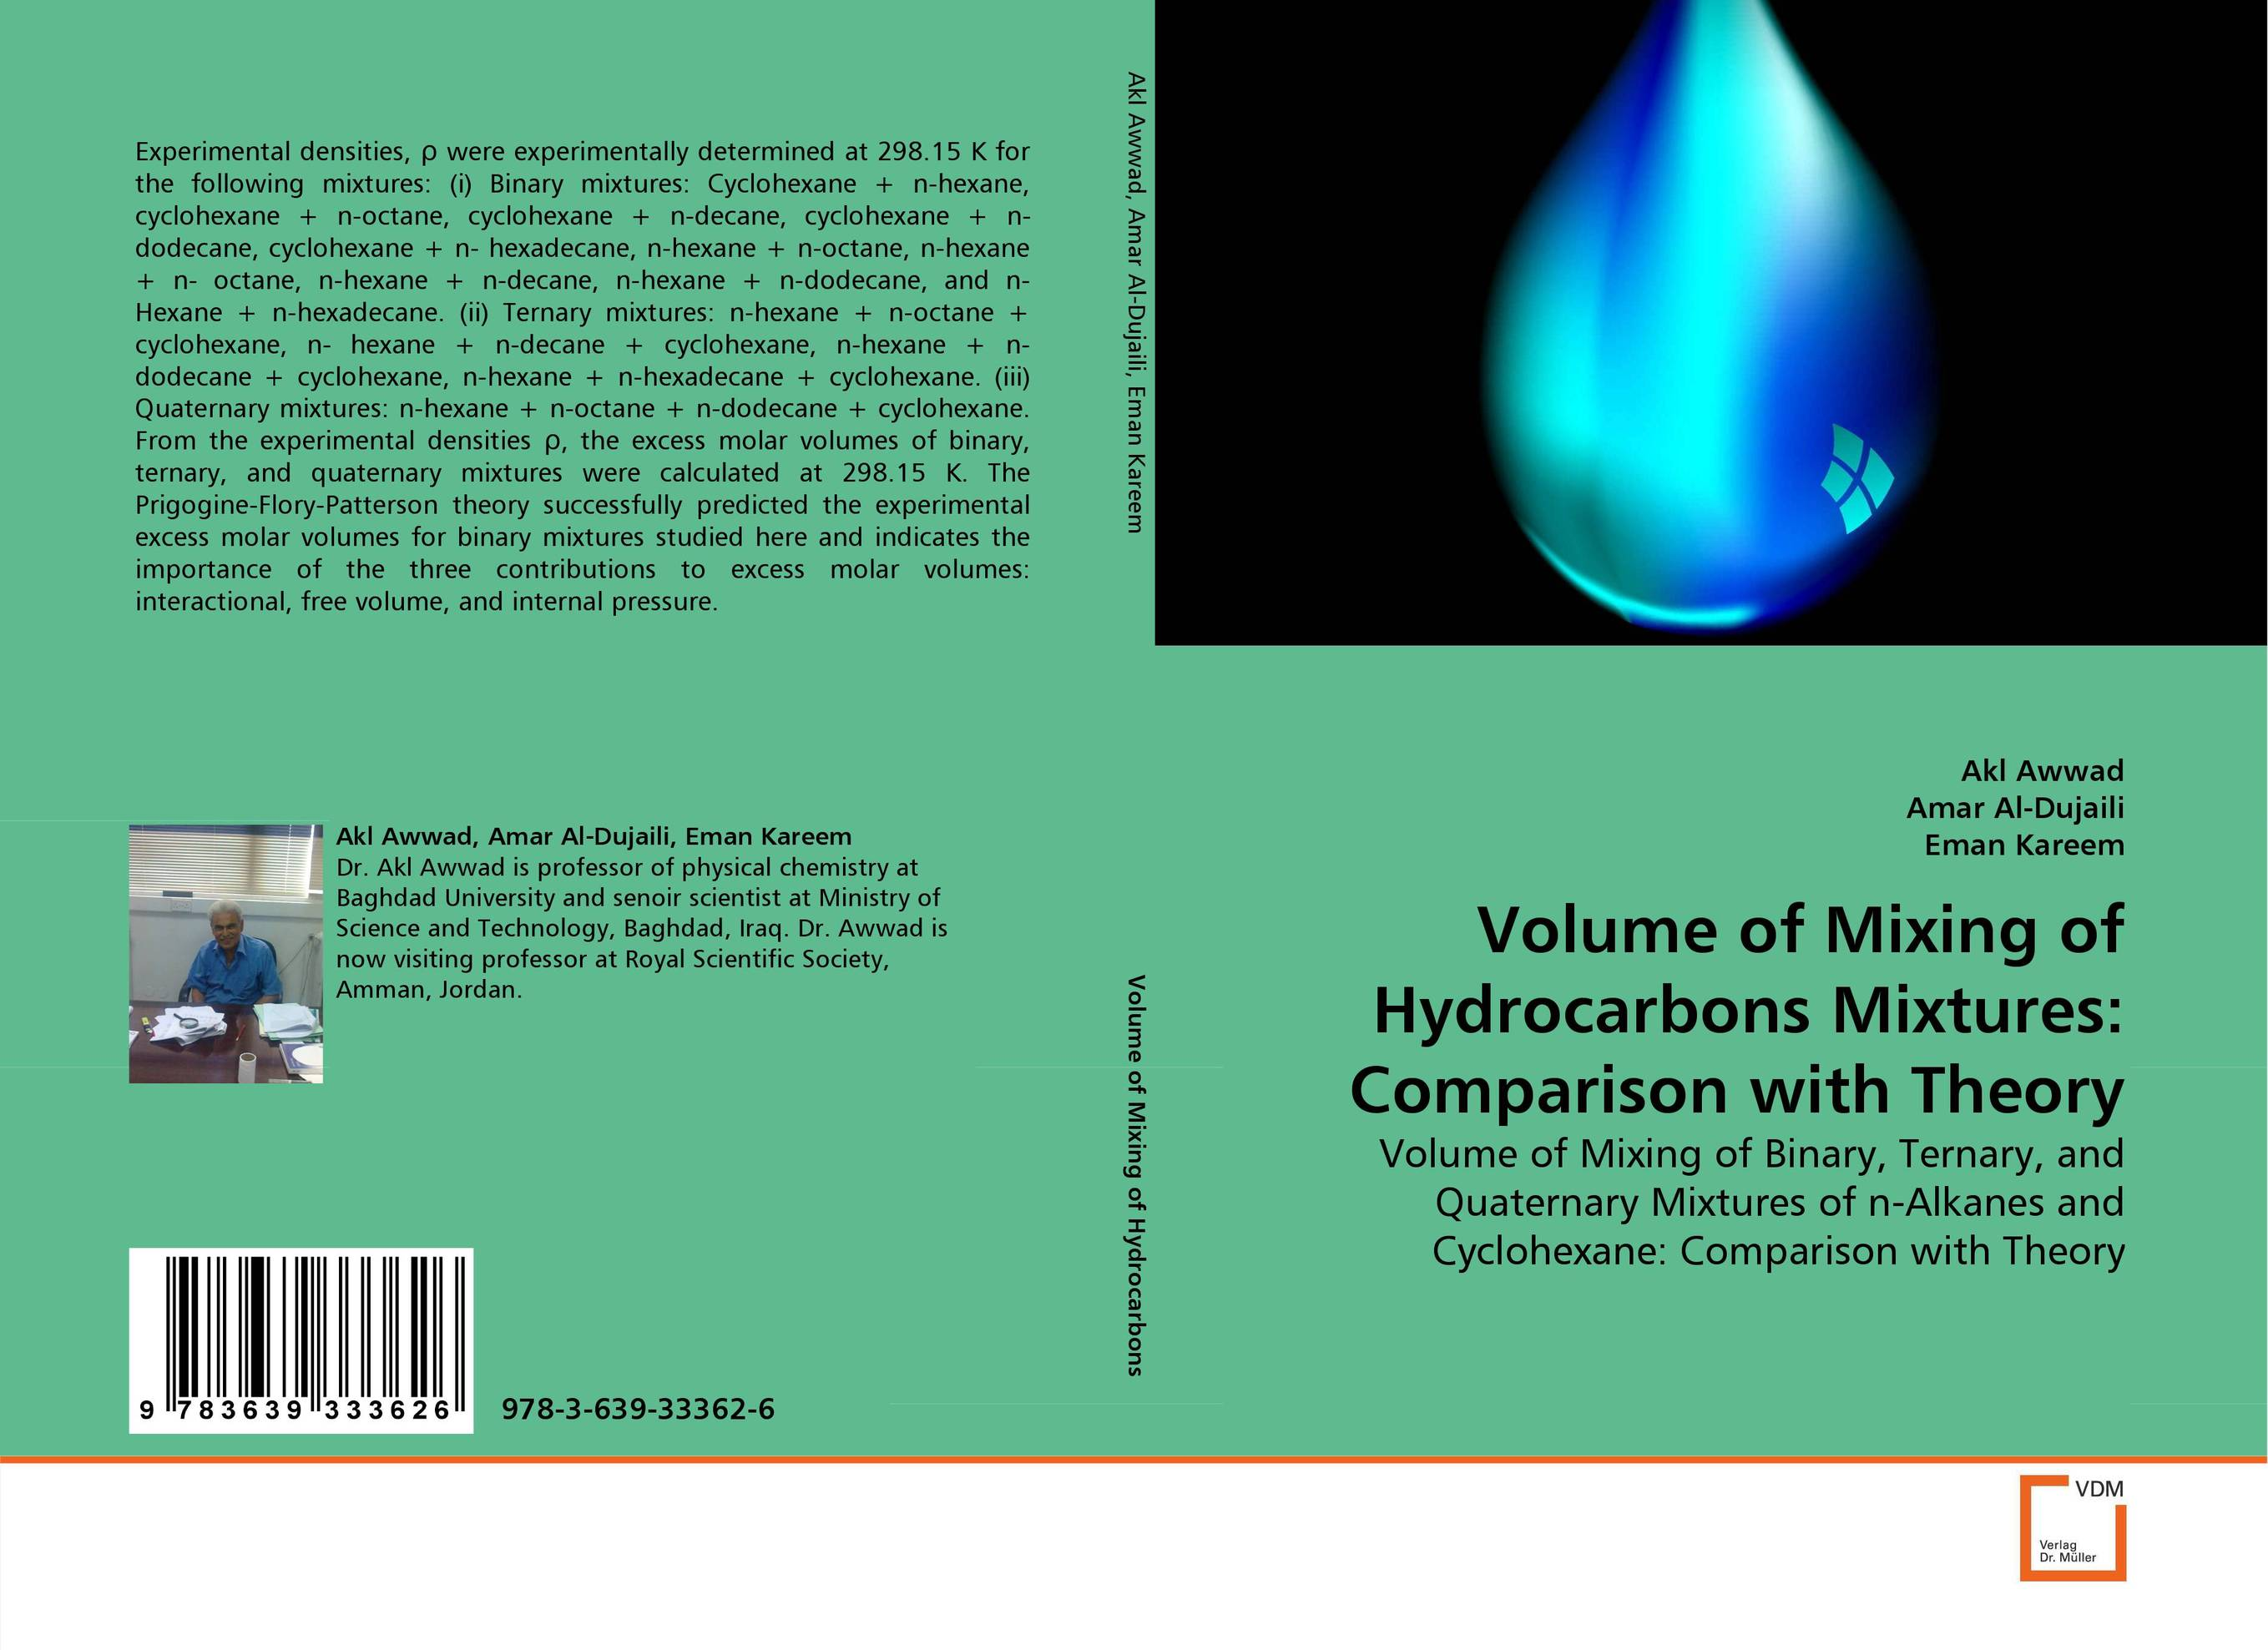 Volume of Mixing of Hydrocarbons Mixtures: Comparison with Theory